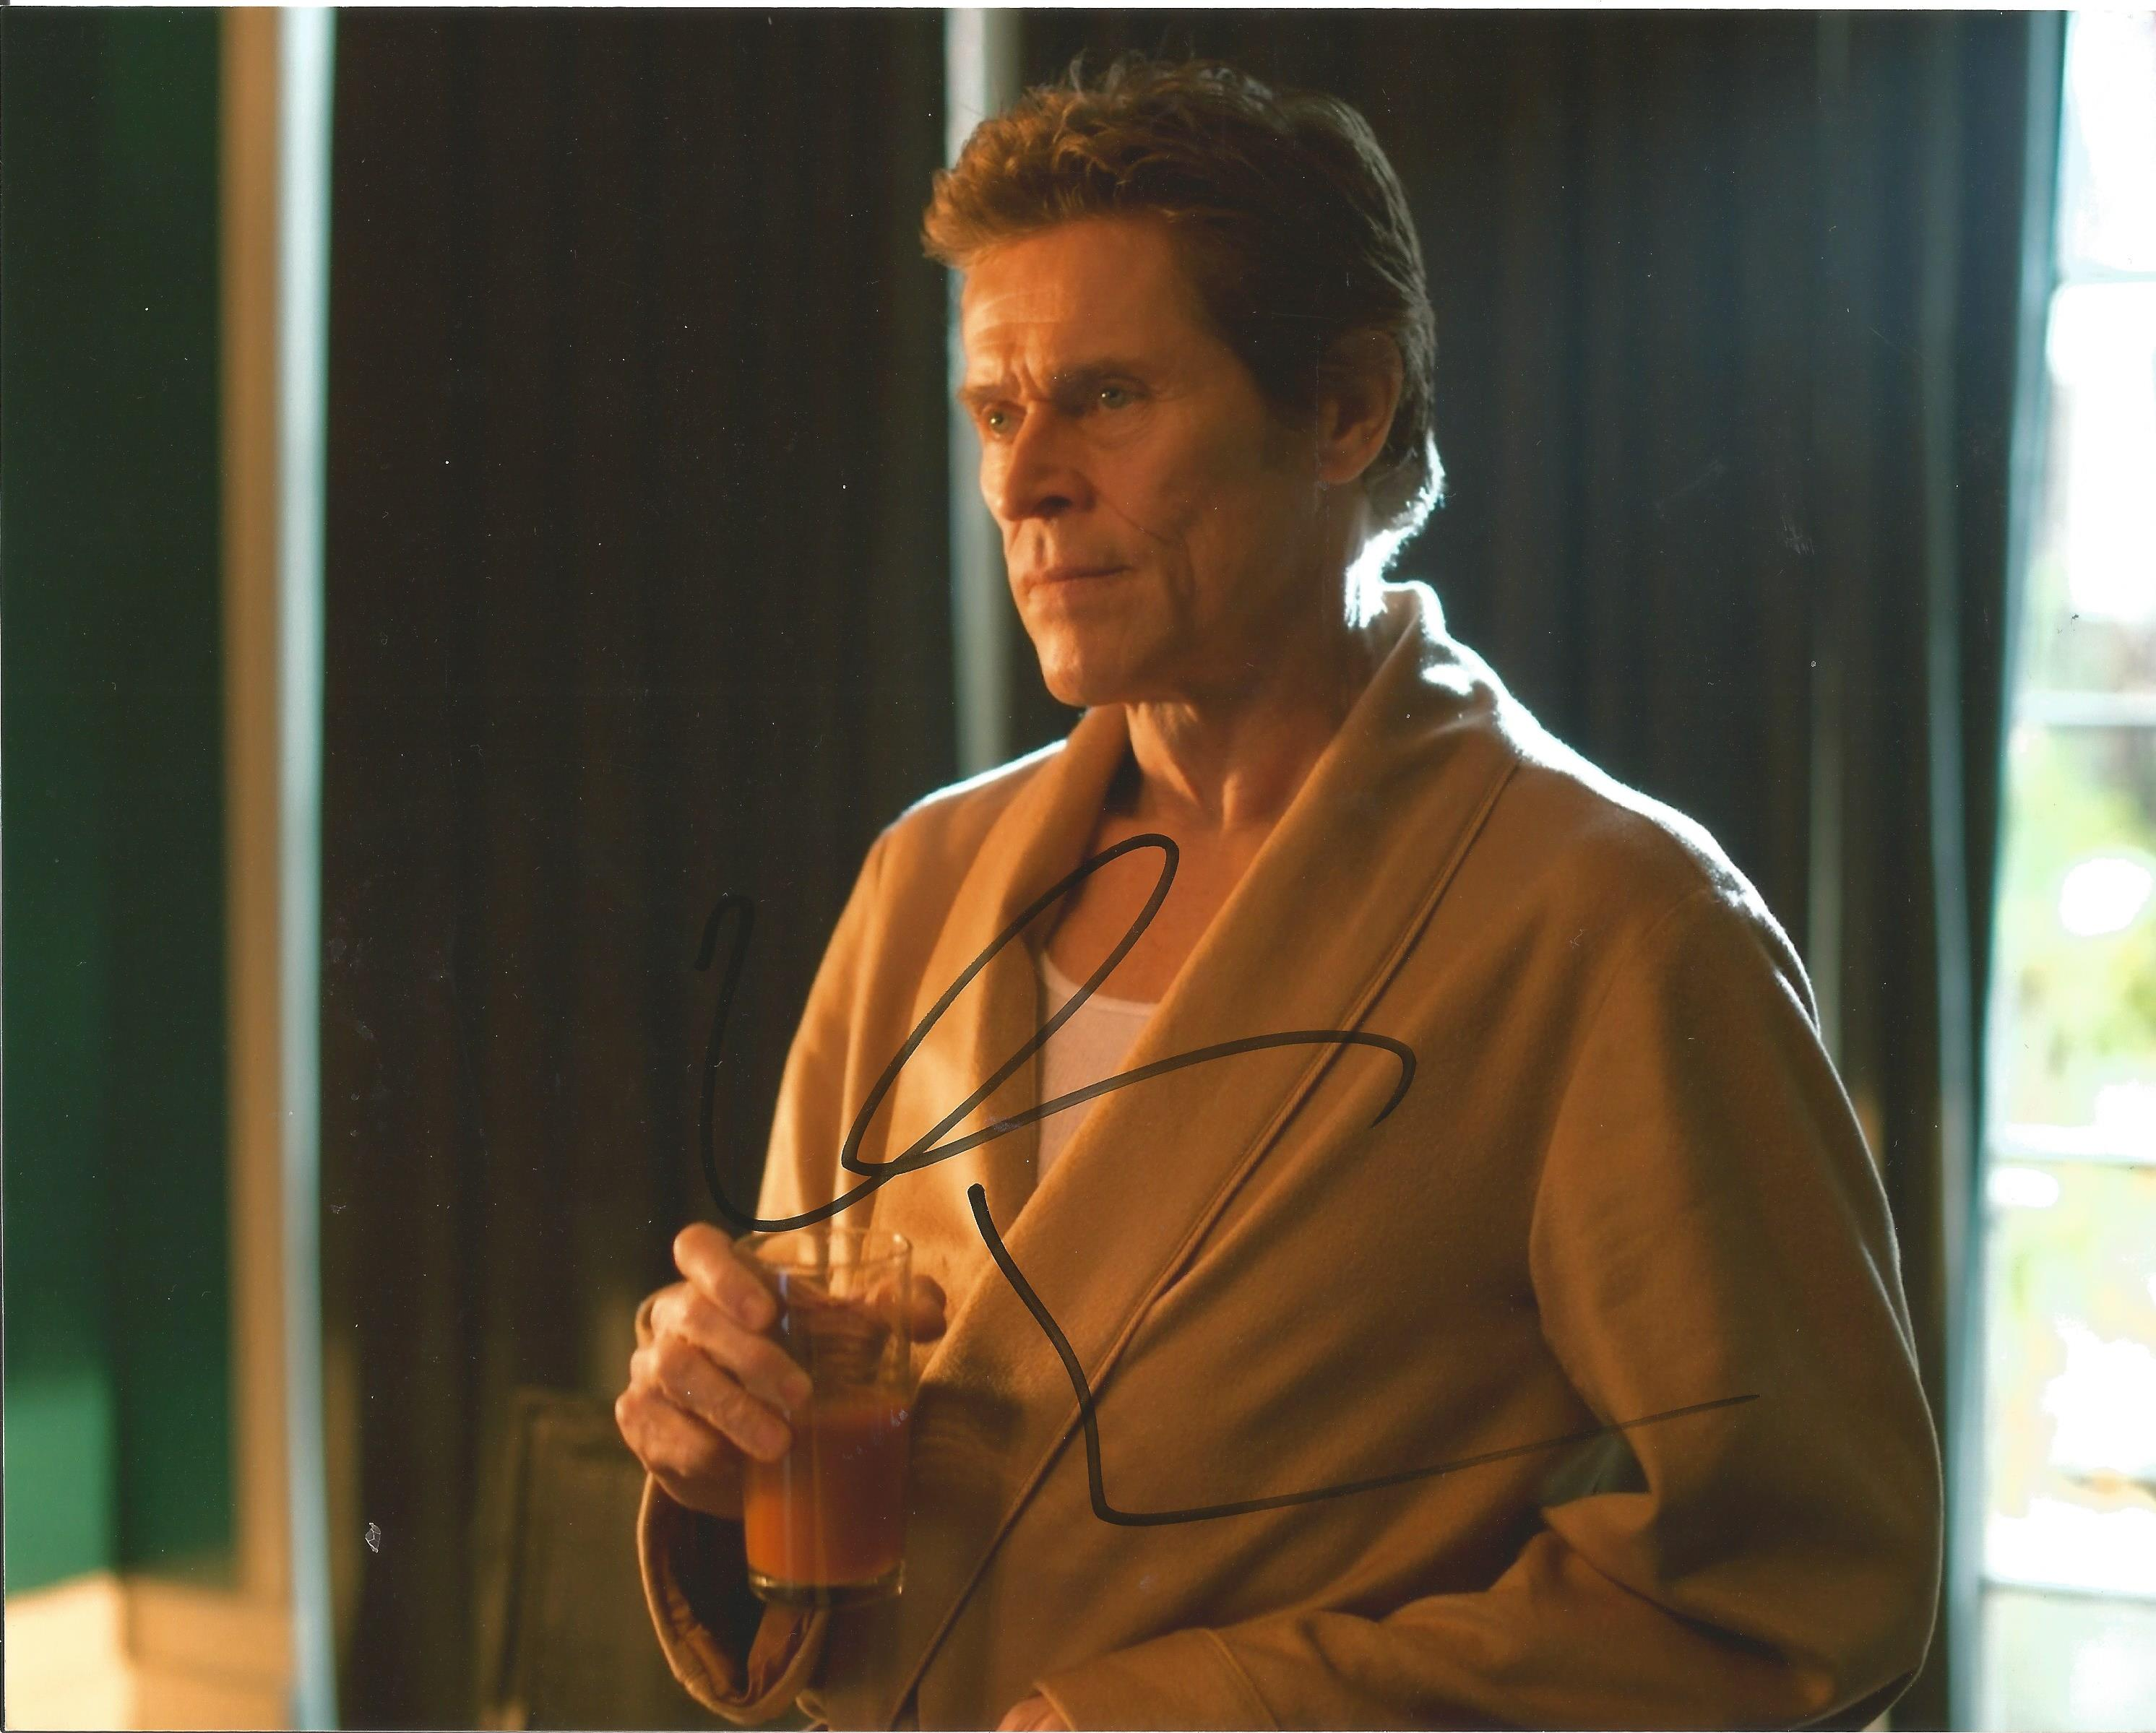 Willem Dafoe signed 10x8 colour photograph. Dafoe was well known for his role as Green Goblin in